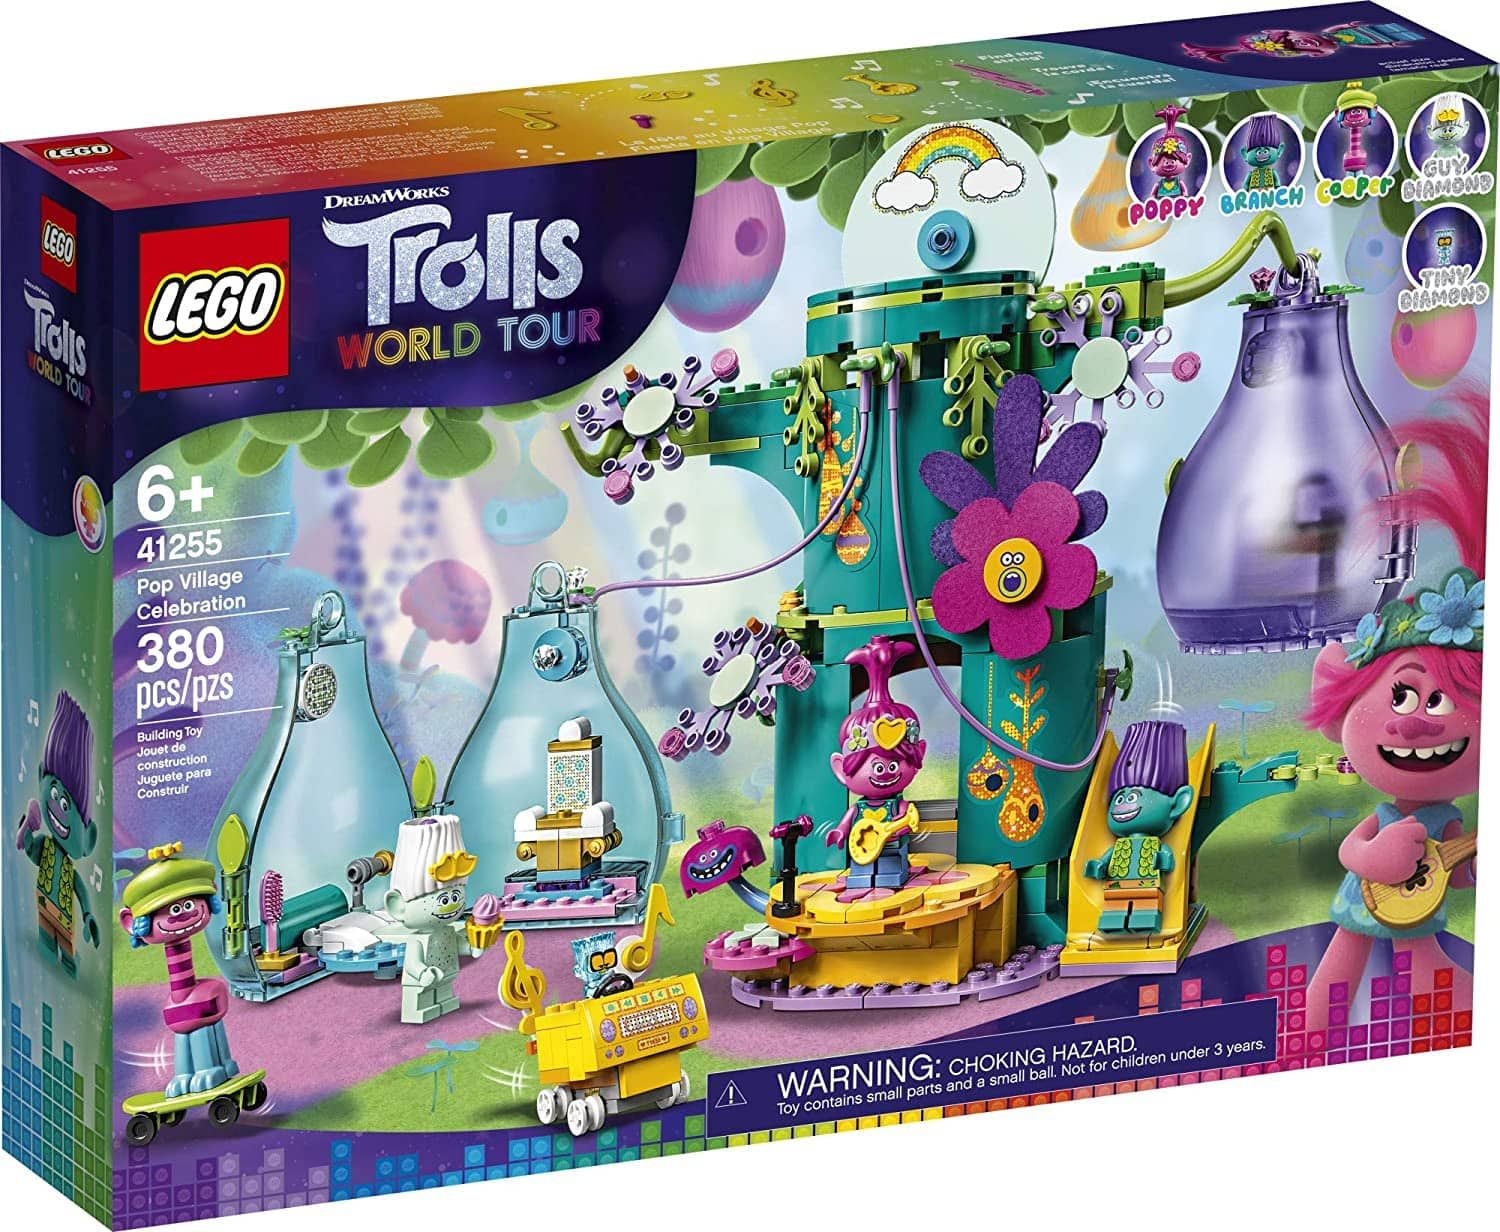 Lego Trolls World Tour Pop Village Celebration (41255) only $35 clearance at Wal-Mart Brick and Mortar YMMV